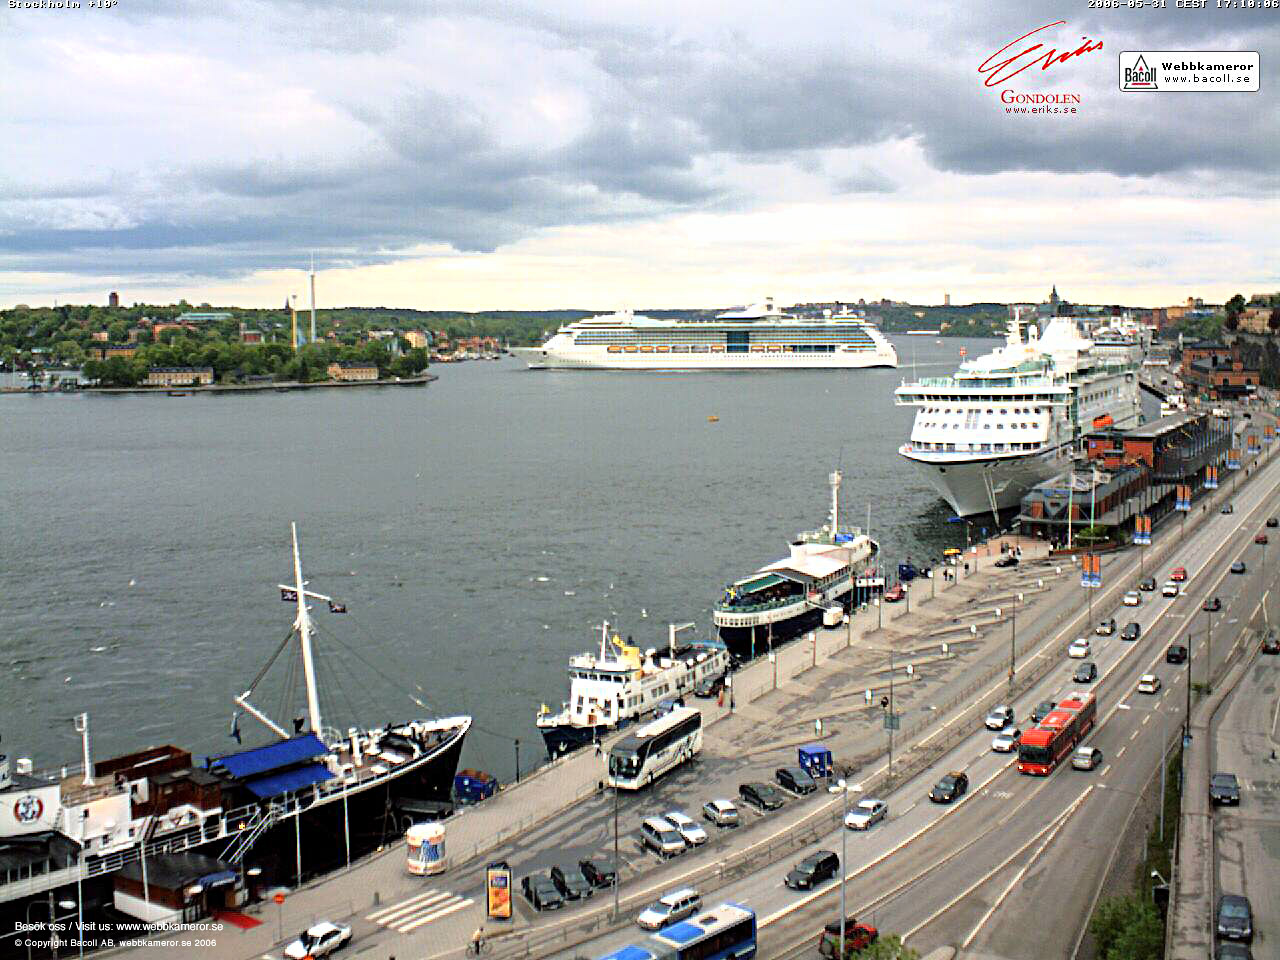 Webbkamera, Stockholm, webcam, väder, weather